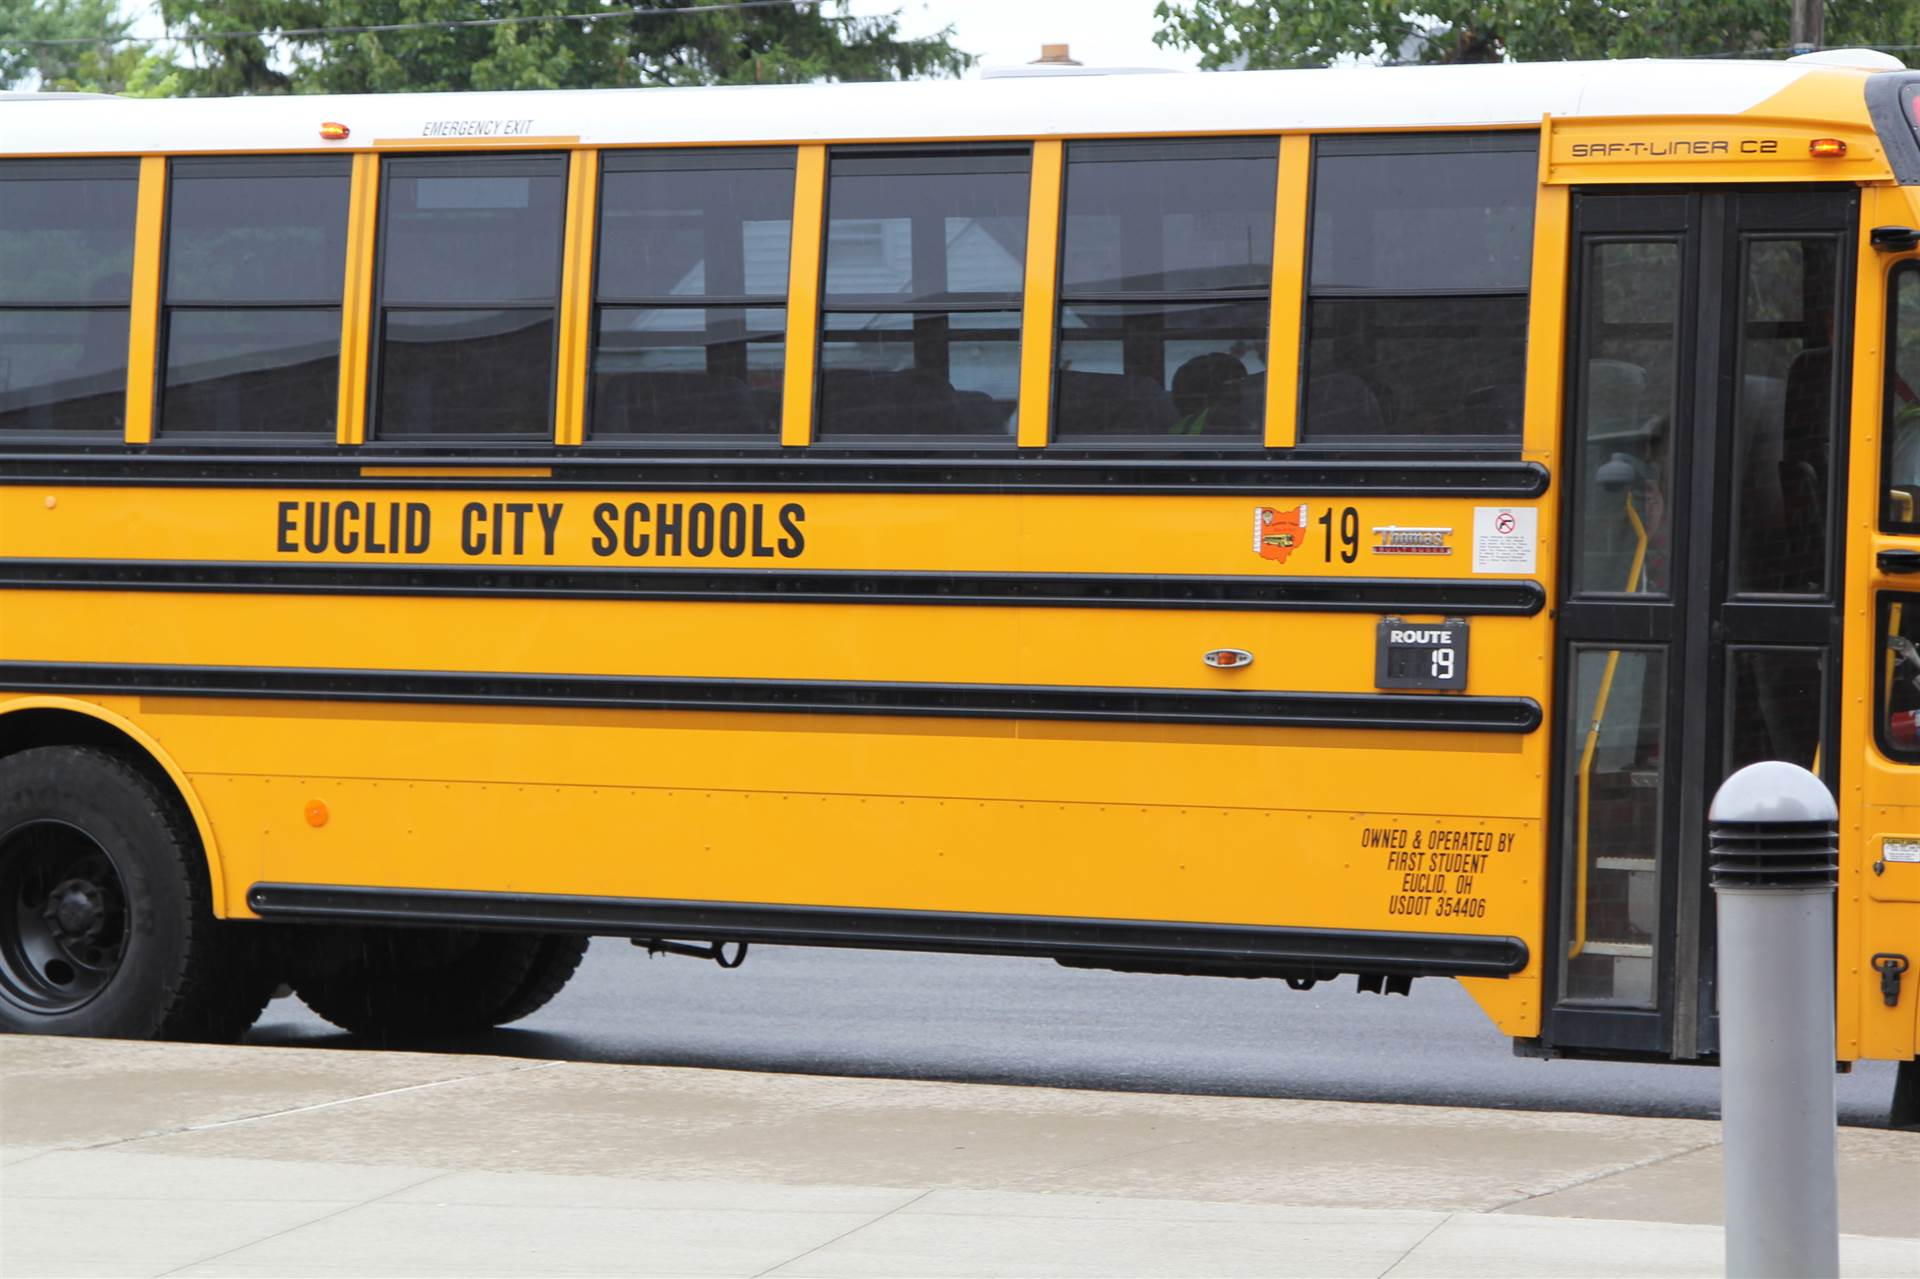 Euclid City Schools School Bus number 19